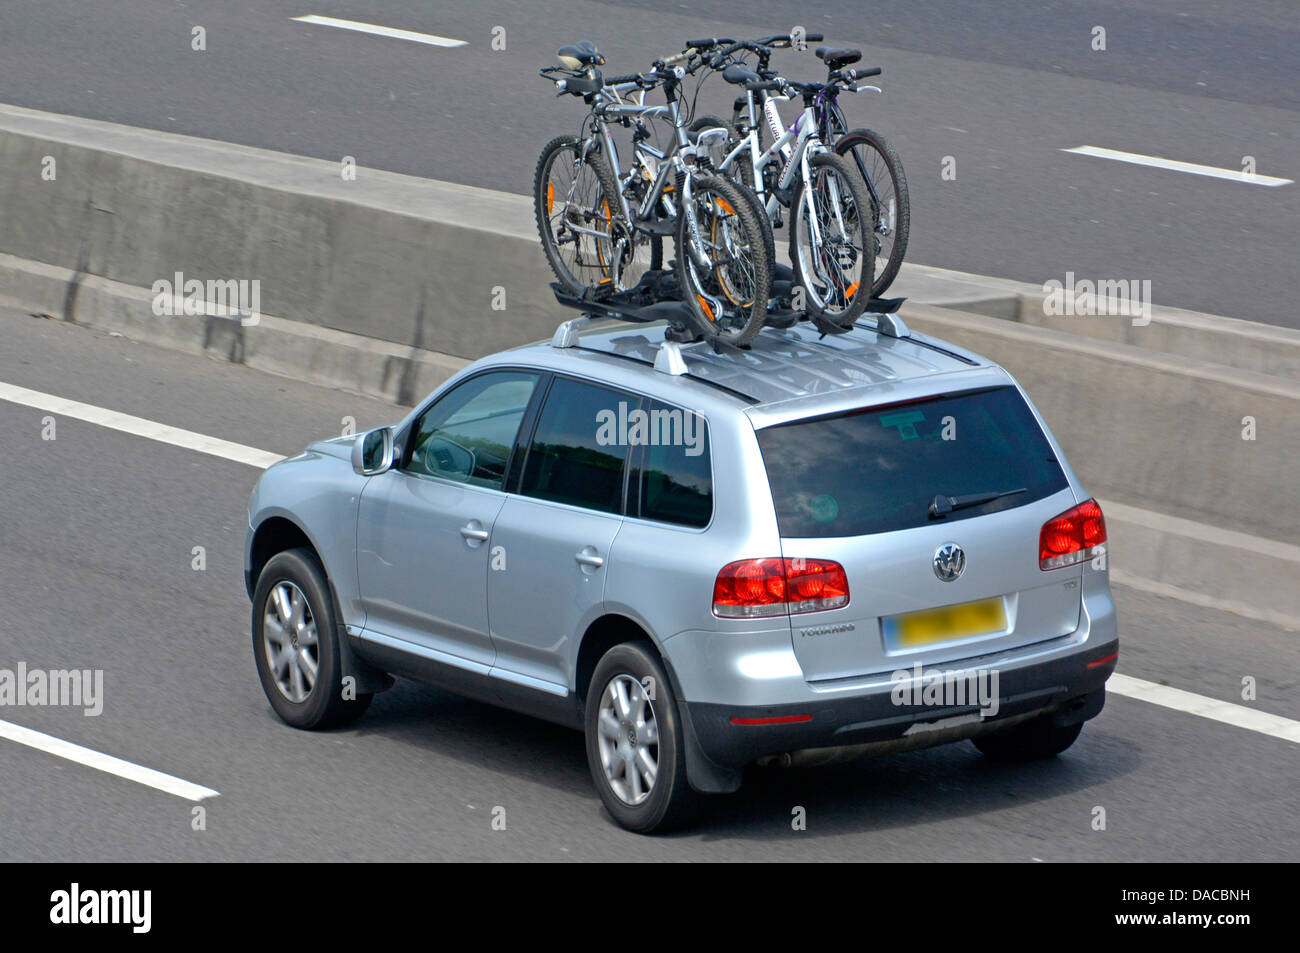 larger views version lombard bike photo picsss name taxi click com roof rack for of subaru x image